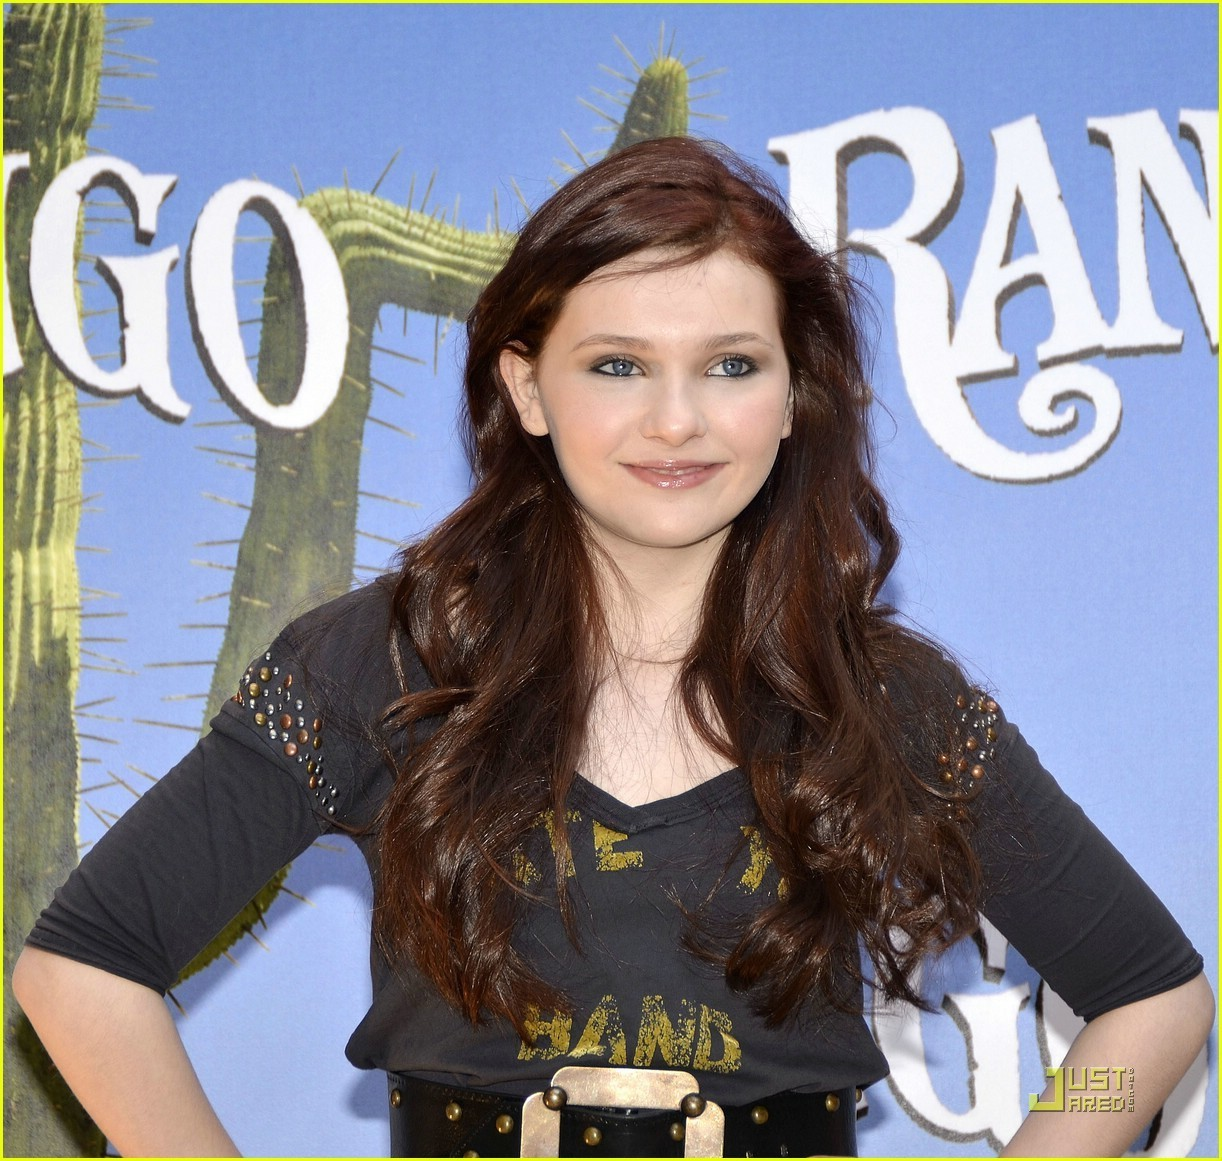 Abigail Breslin - Photo Colection